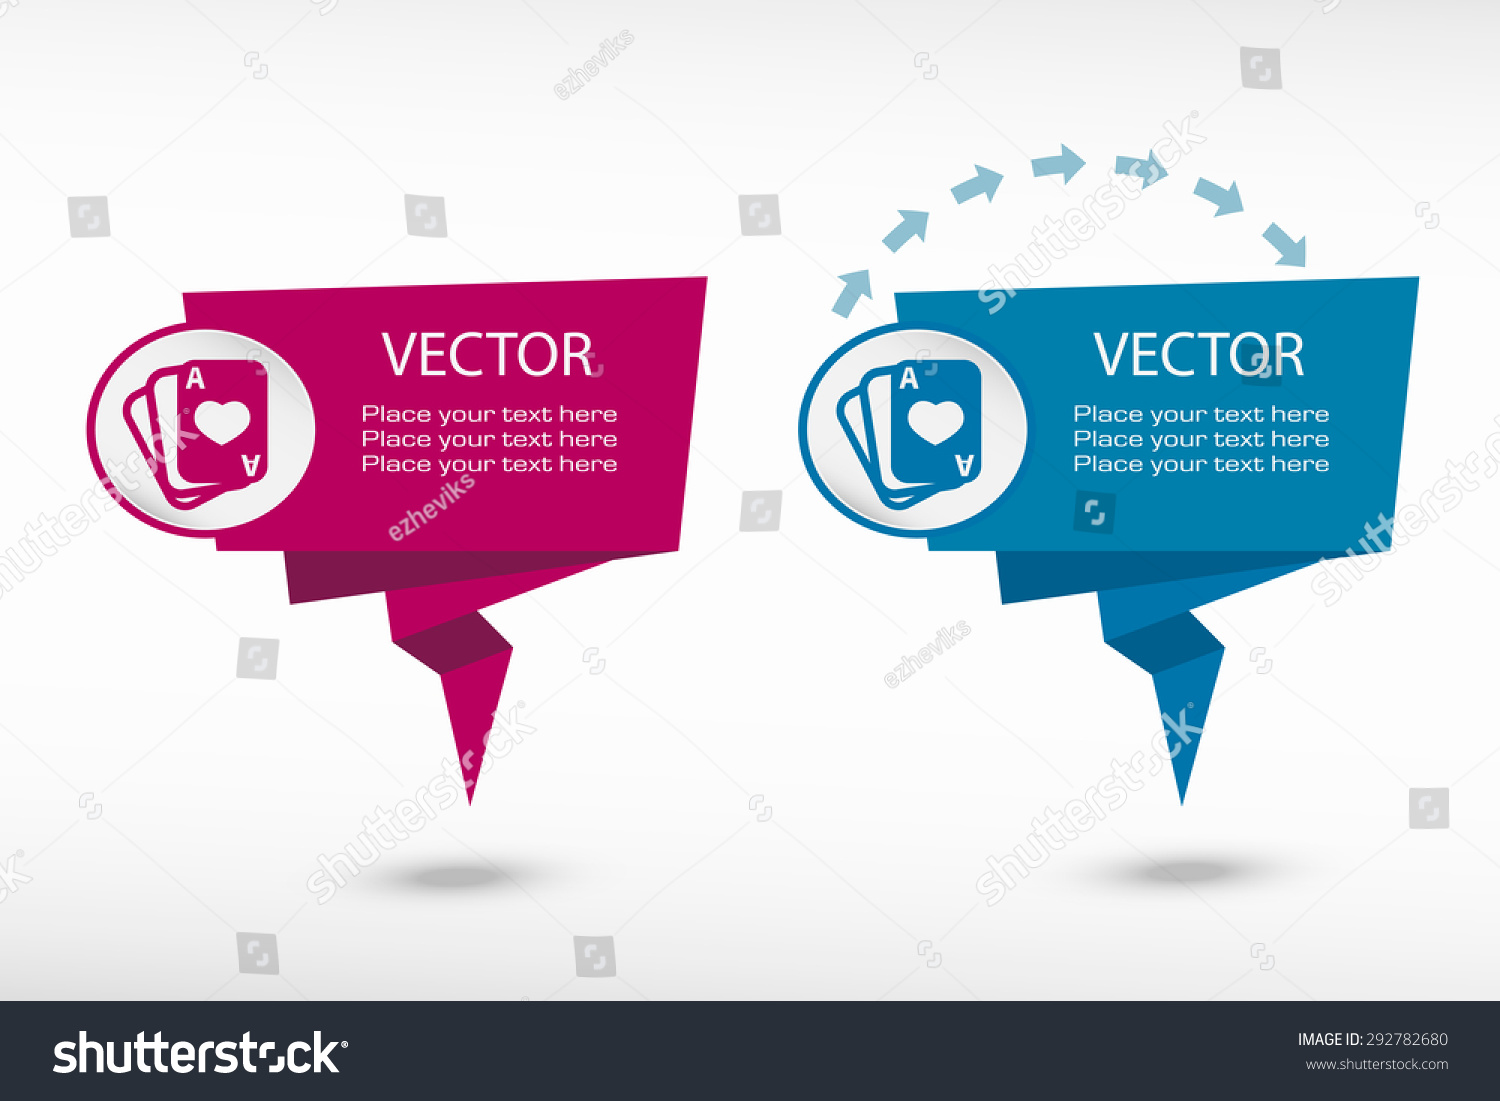 Game cards icon on origami paper stock vector 292782680 shutterstock game cards icon on origami paper speech bubble or web banner prints vector illustration jeuxipadfo Images